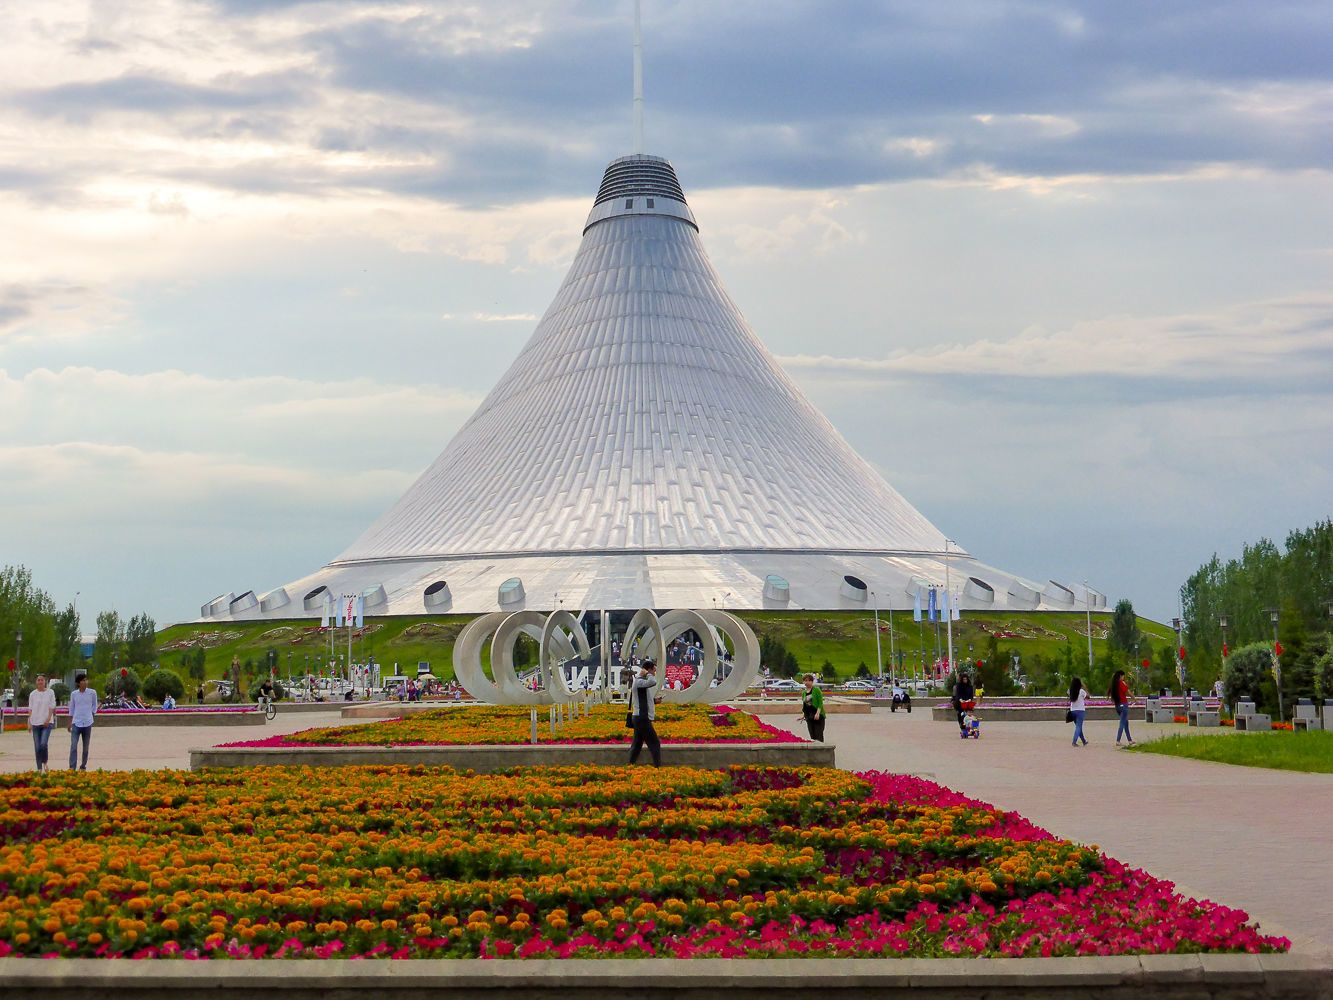 The Best Central Asia Tour: Khan Shatyr tent in Astana